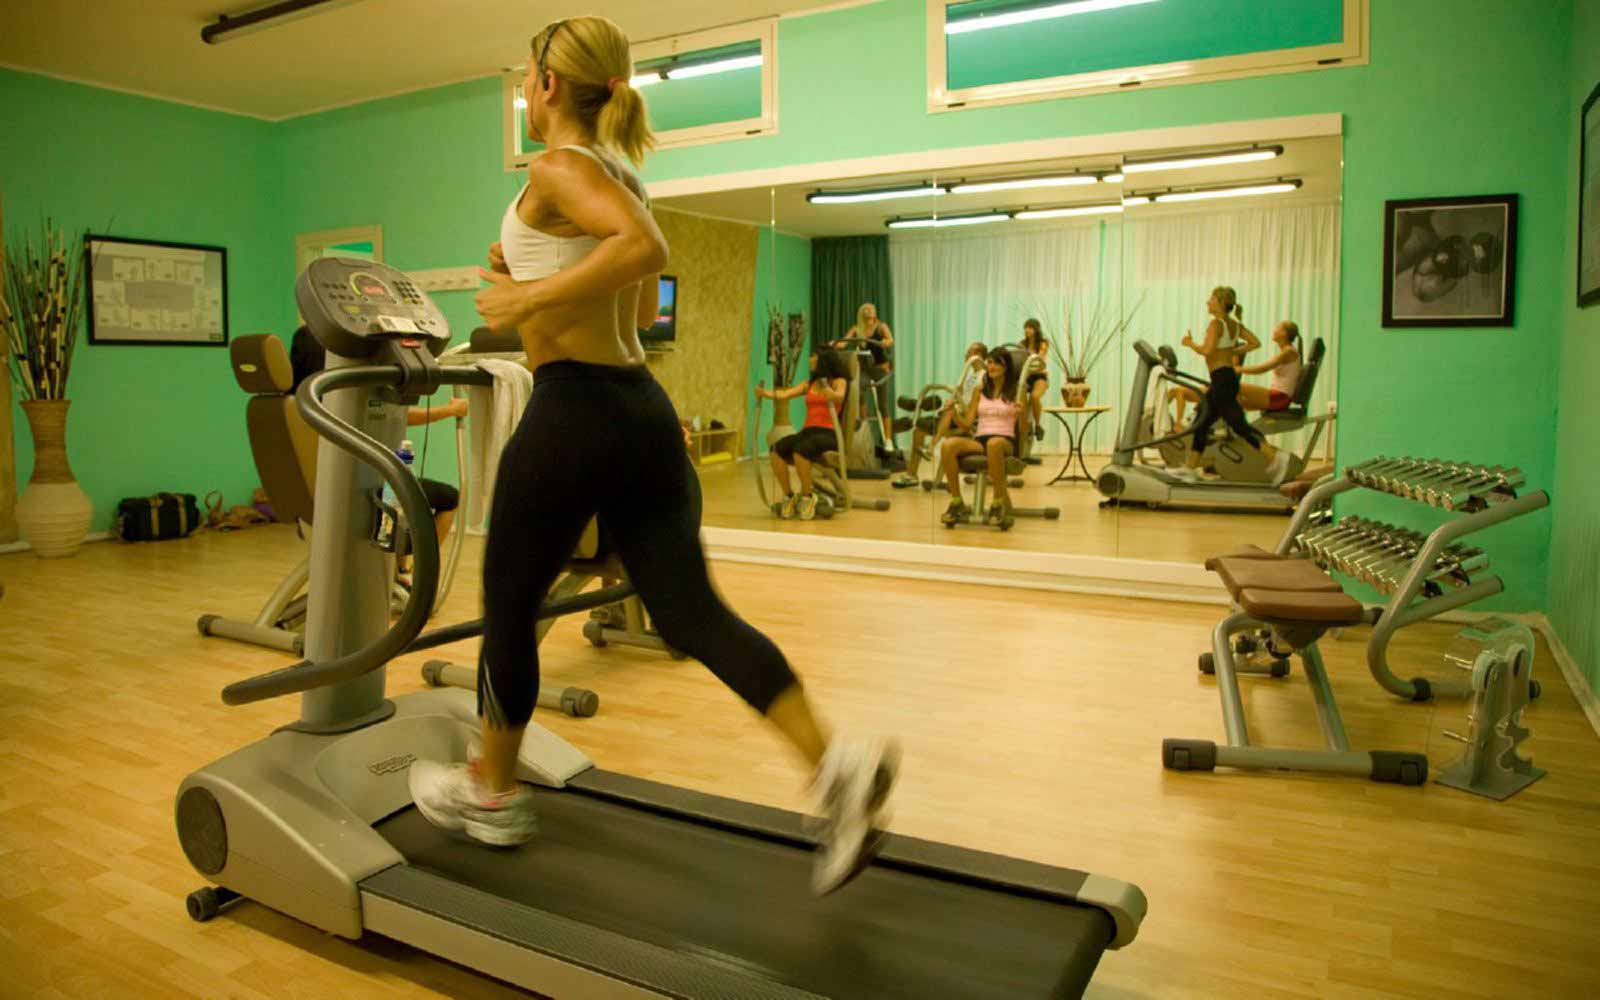 Fitness room at Grand Hotel in Porto Cervo